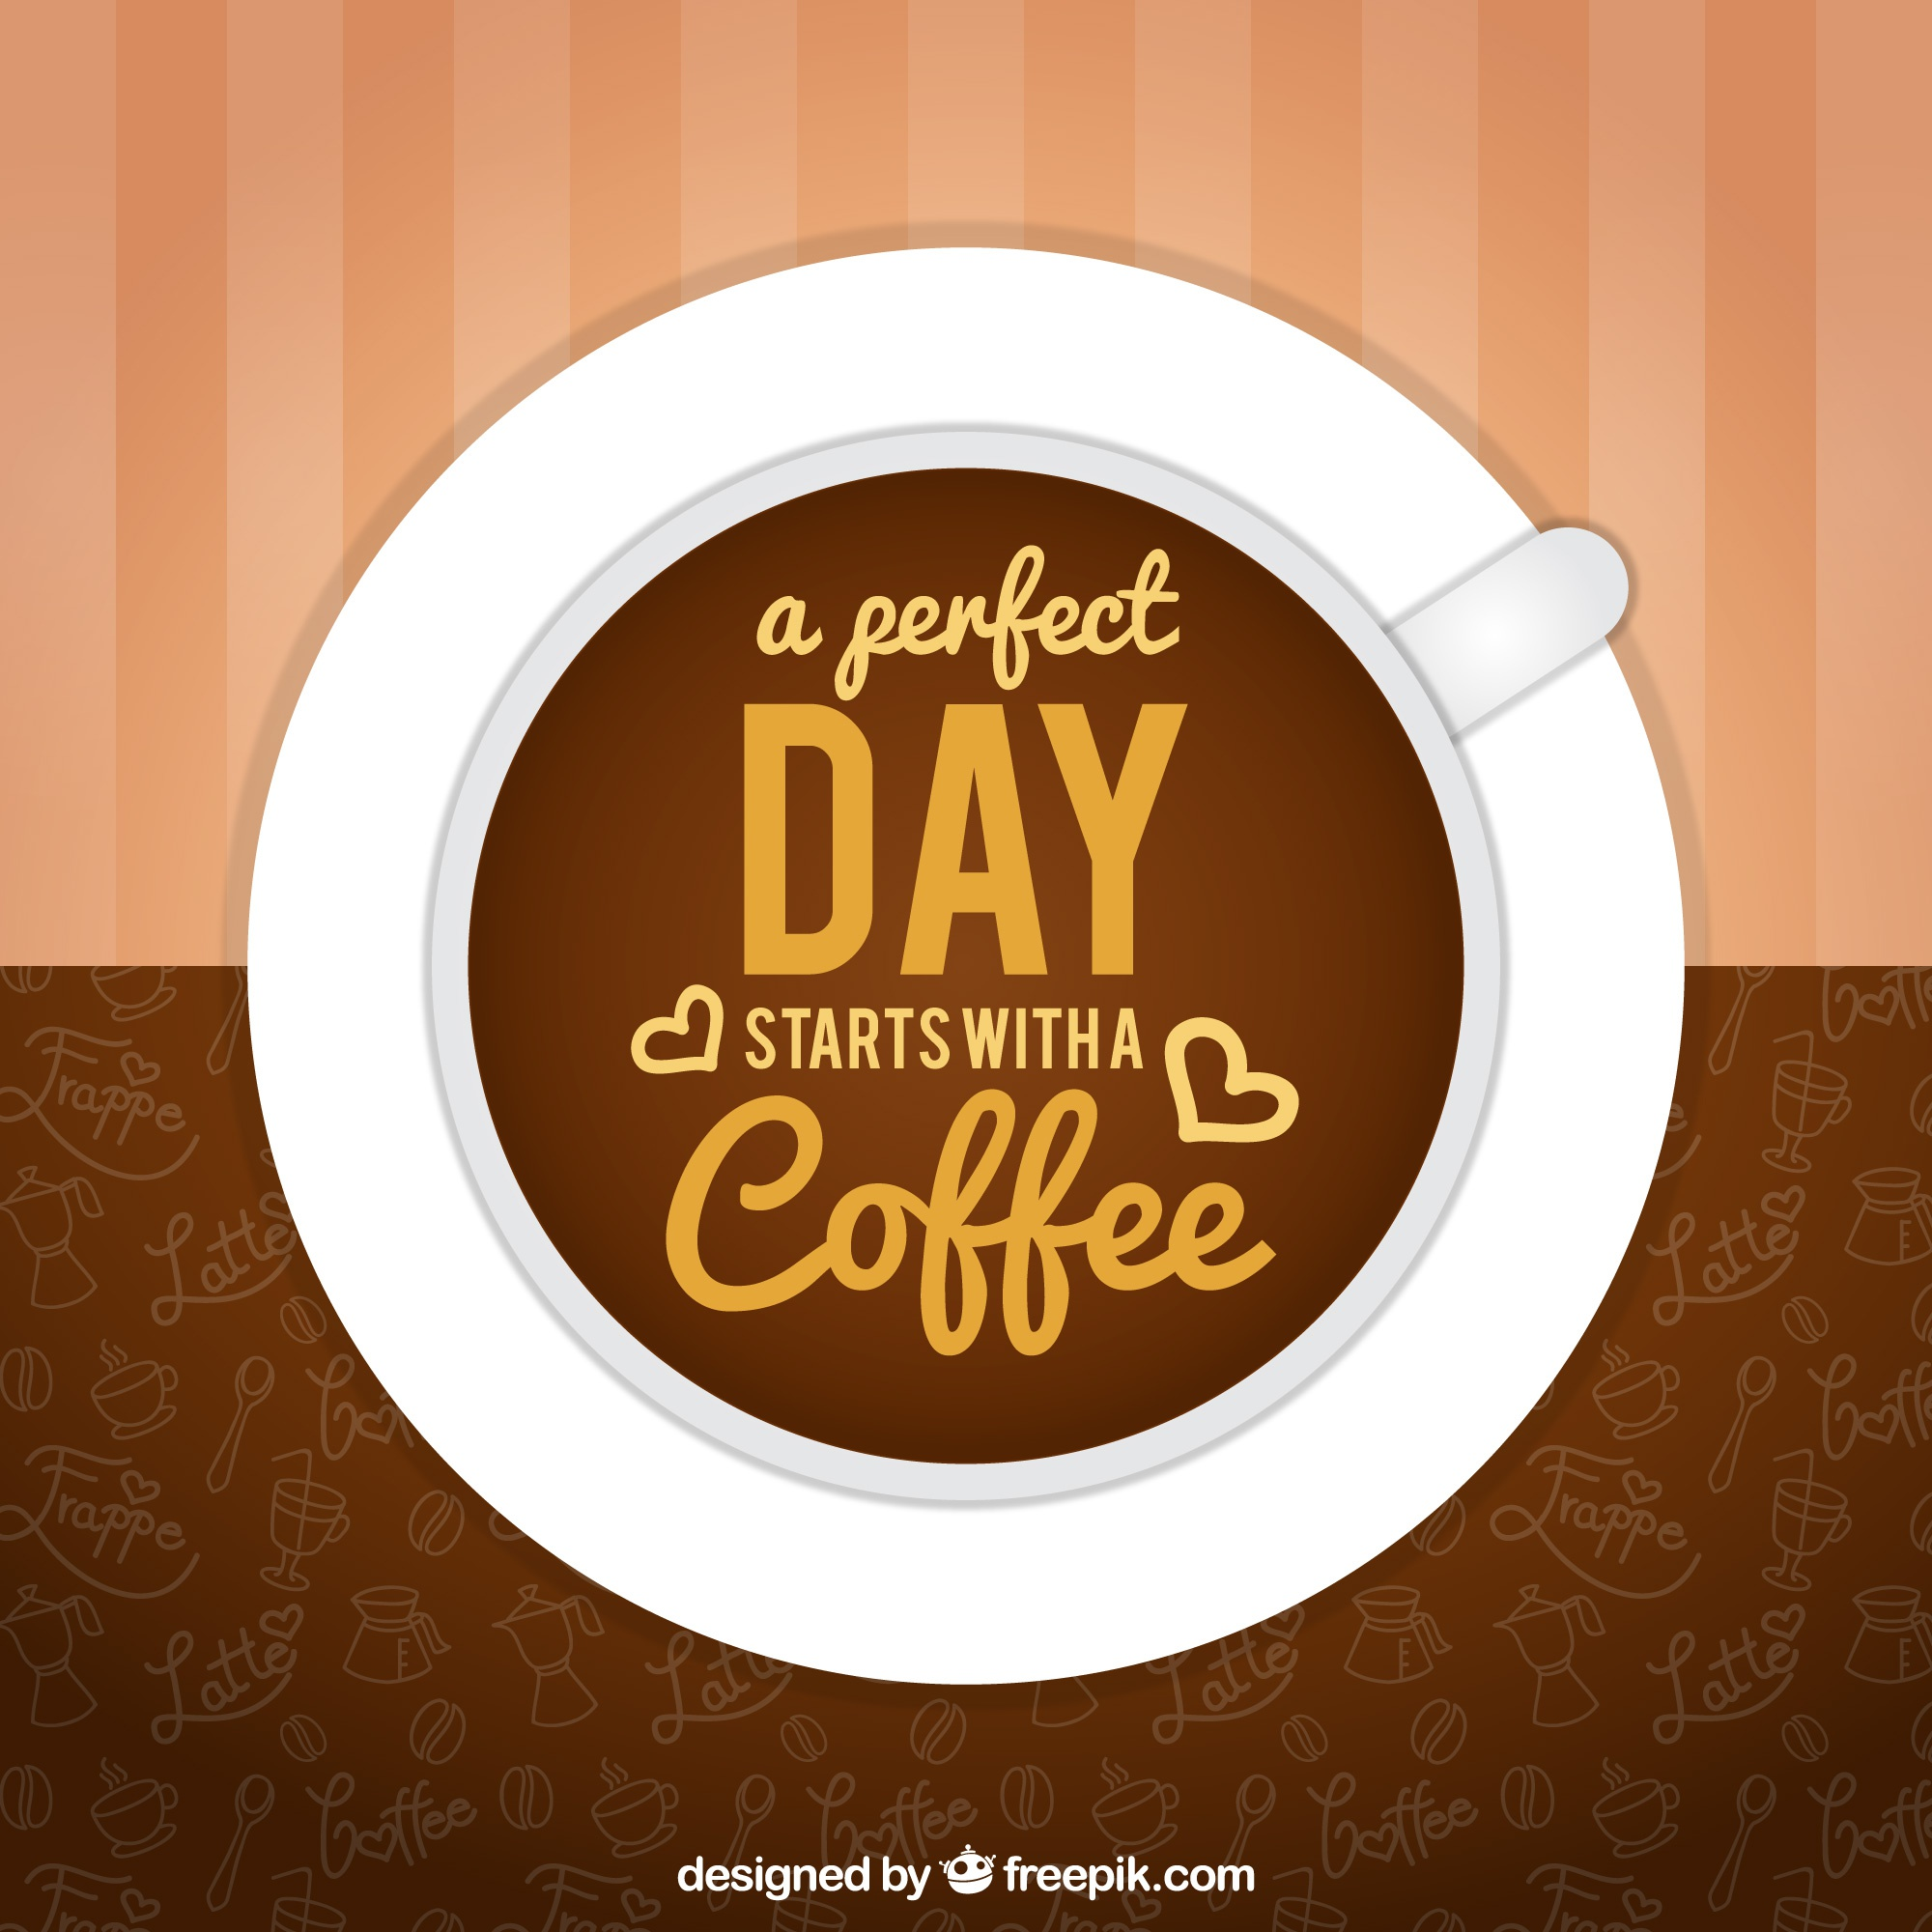 Great background with coffee cup and nice phrase